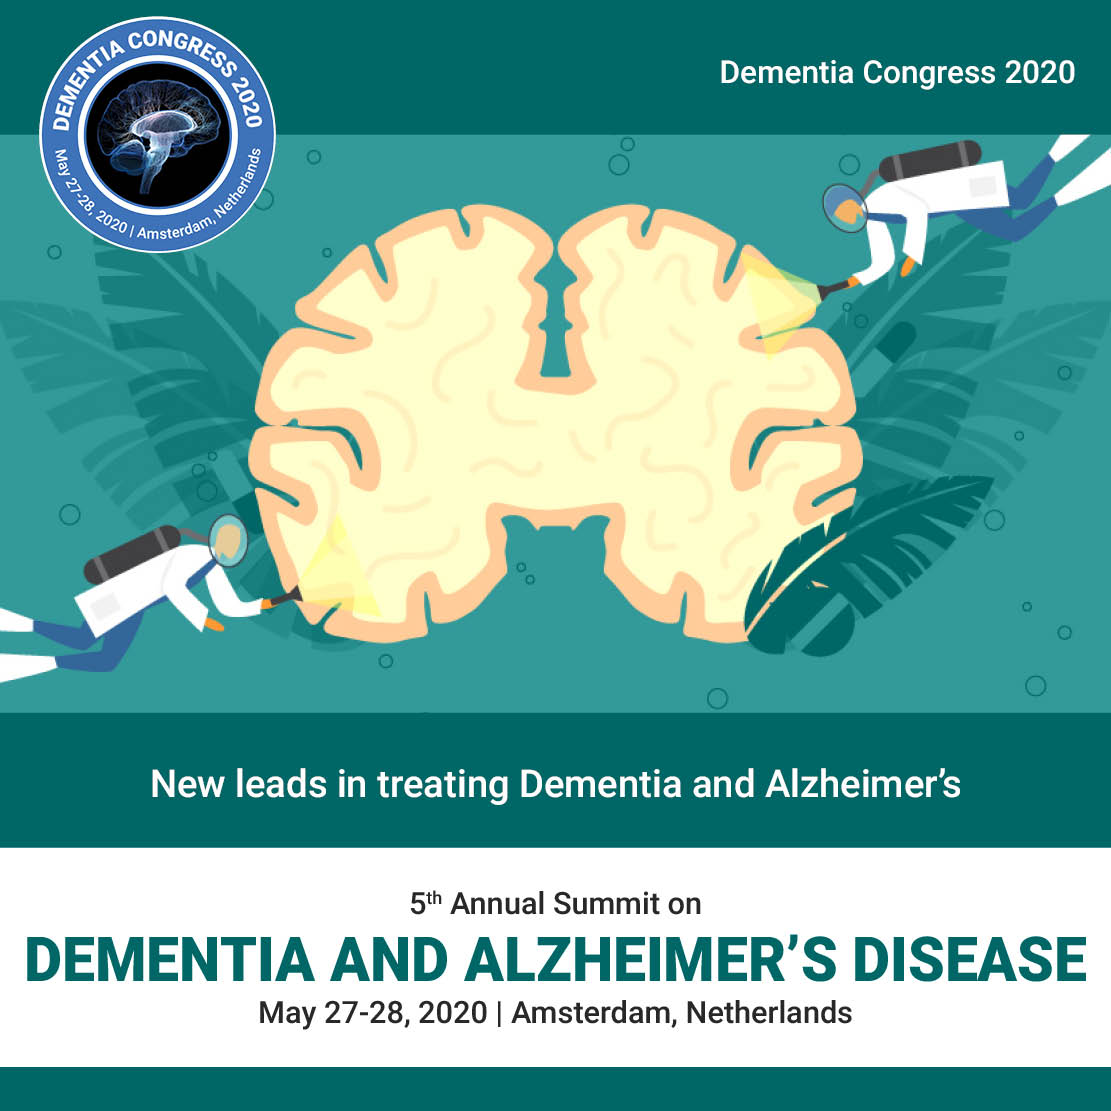 New leads in treating Dementia and Alzheimer's   Photo